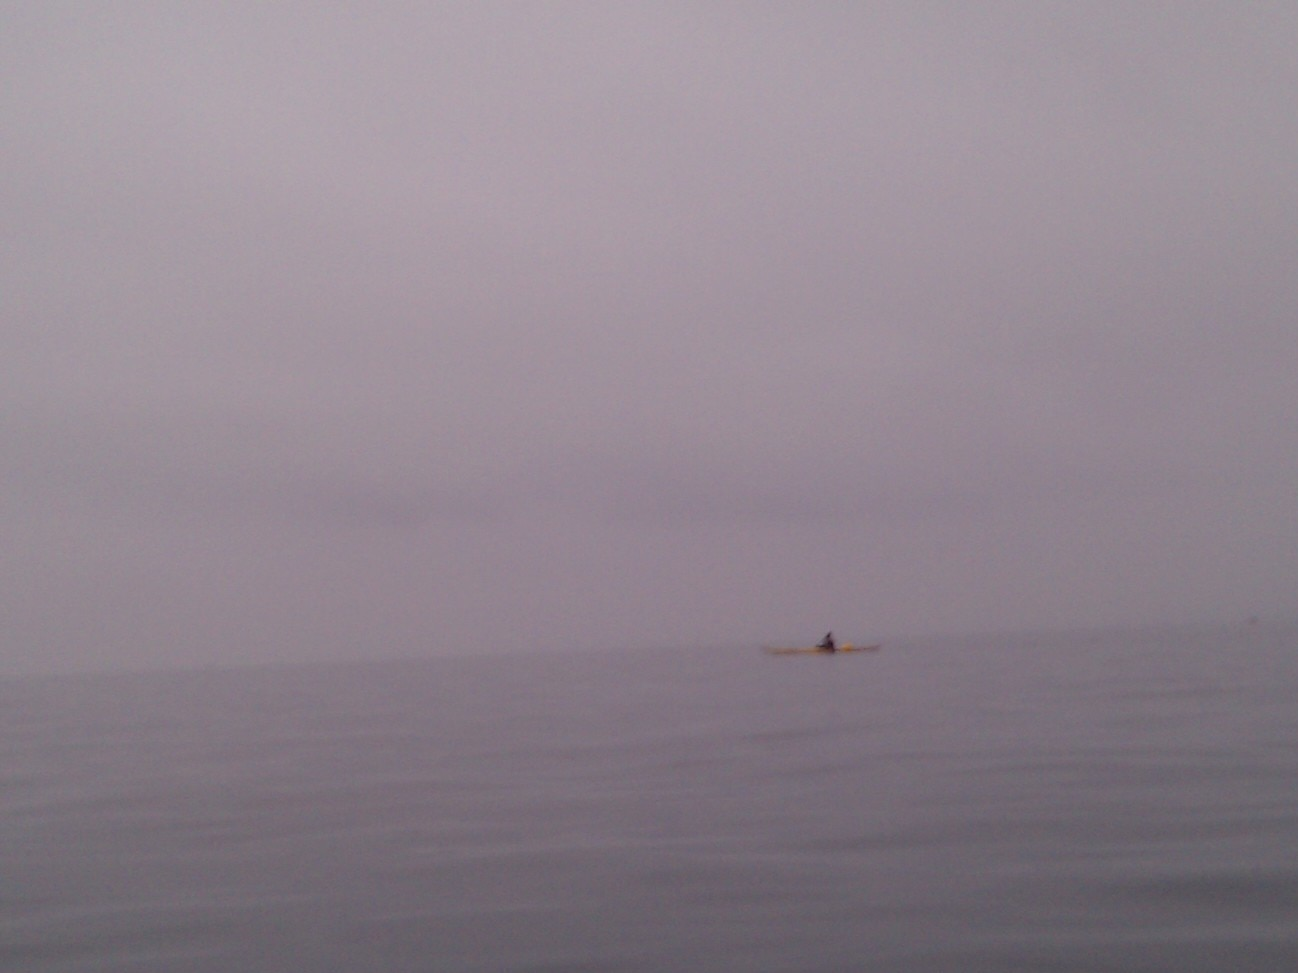 Paul nearly gets lost in the fog on Lake Constance.